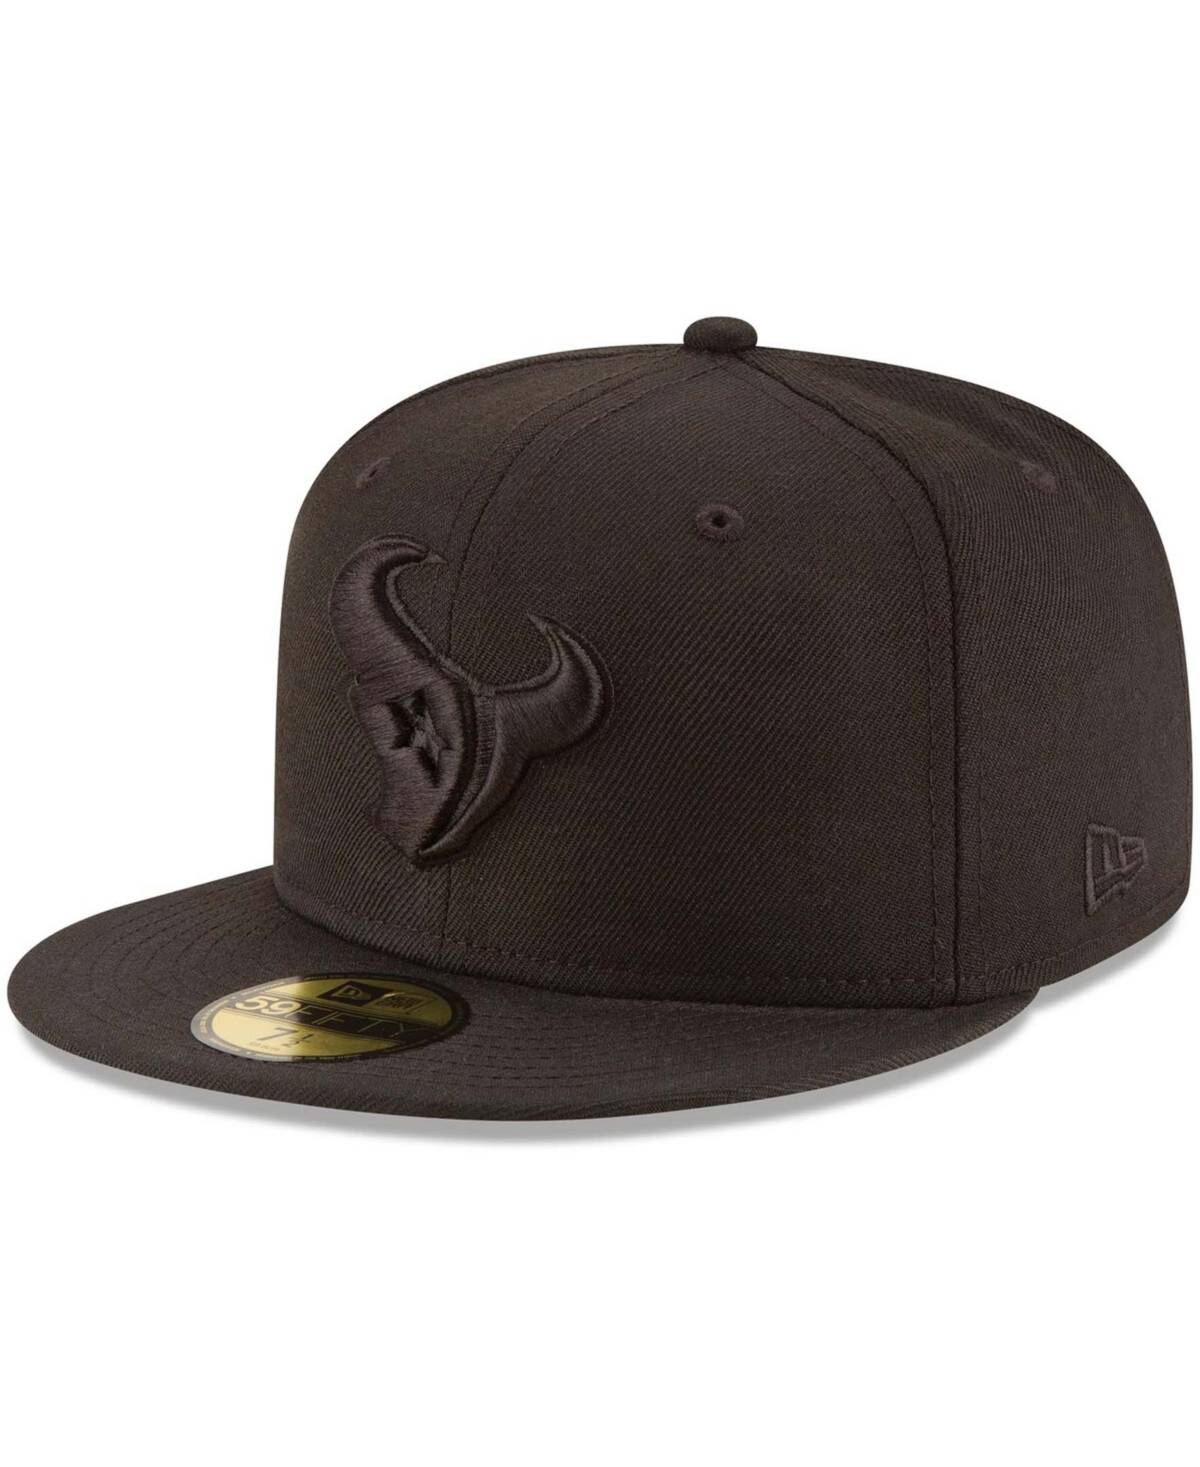 Men's Houston Texans Black on Black 59FIFTY Fitted Hat